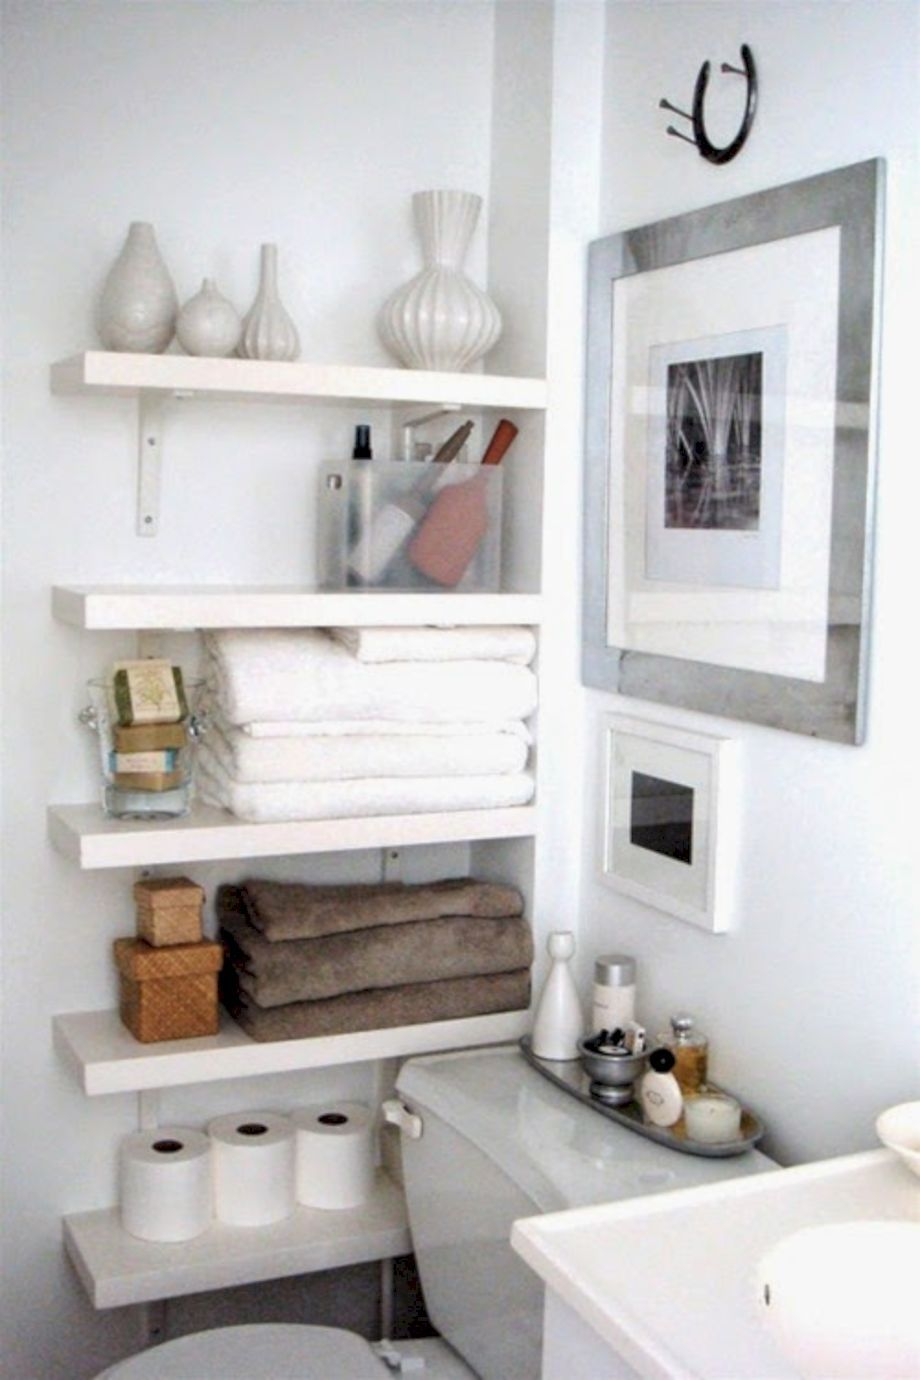 Merveilleux 69 Efficient Small Bathroom Storage Organization Ideas